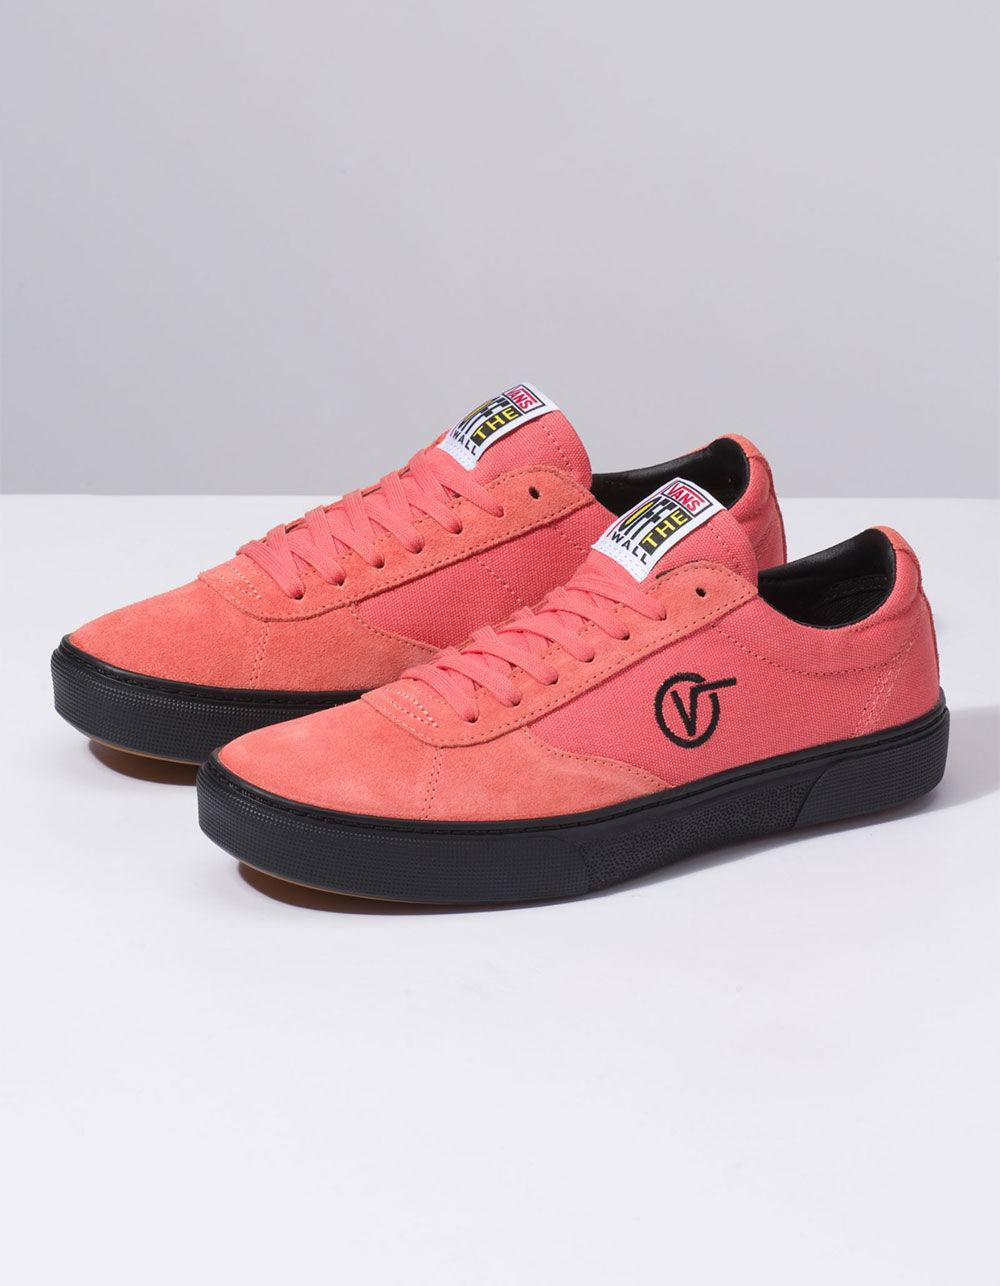 711edb5d9d89 Lyst - Vans Paradoxxx Porcelain Rose   Black Shoes for Men